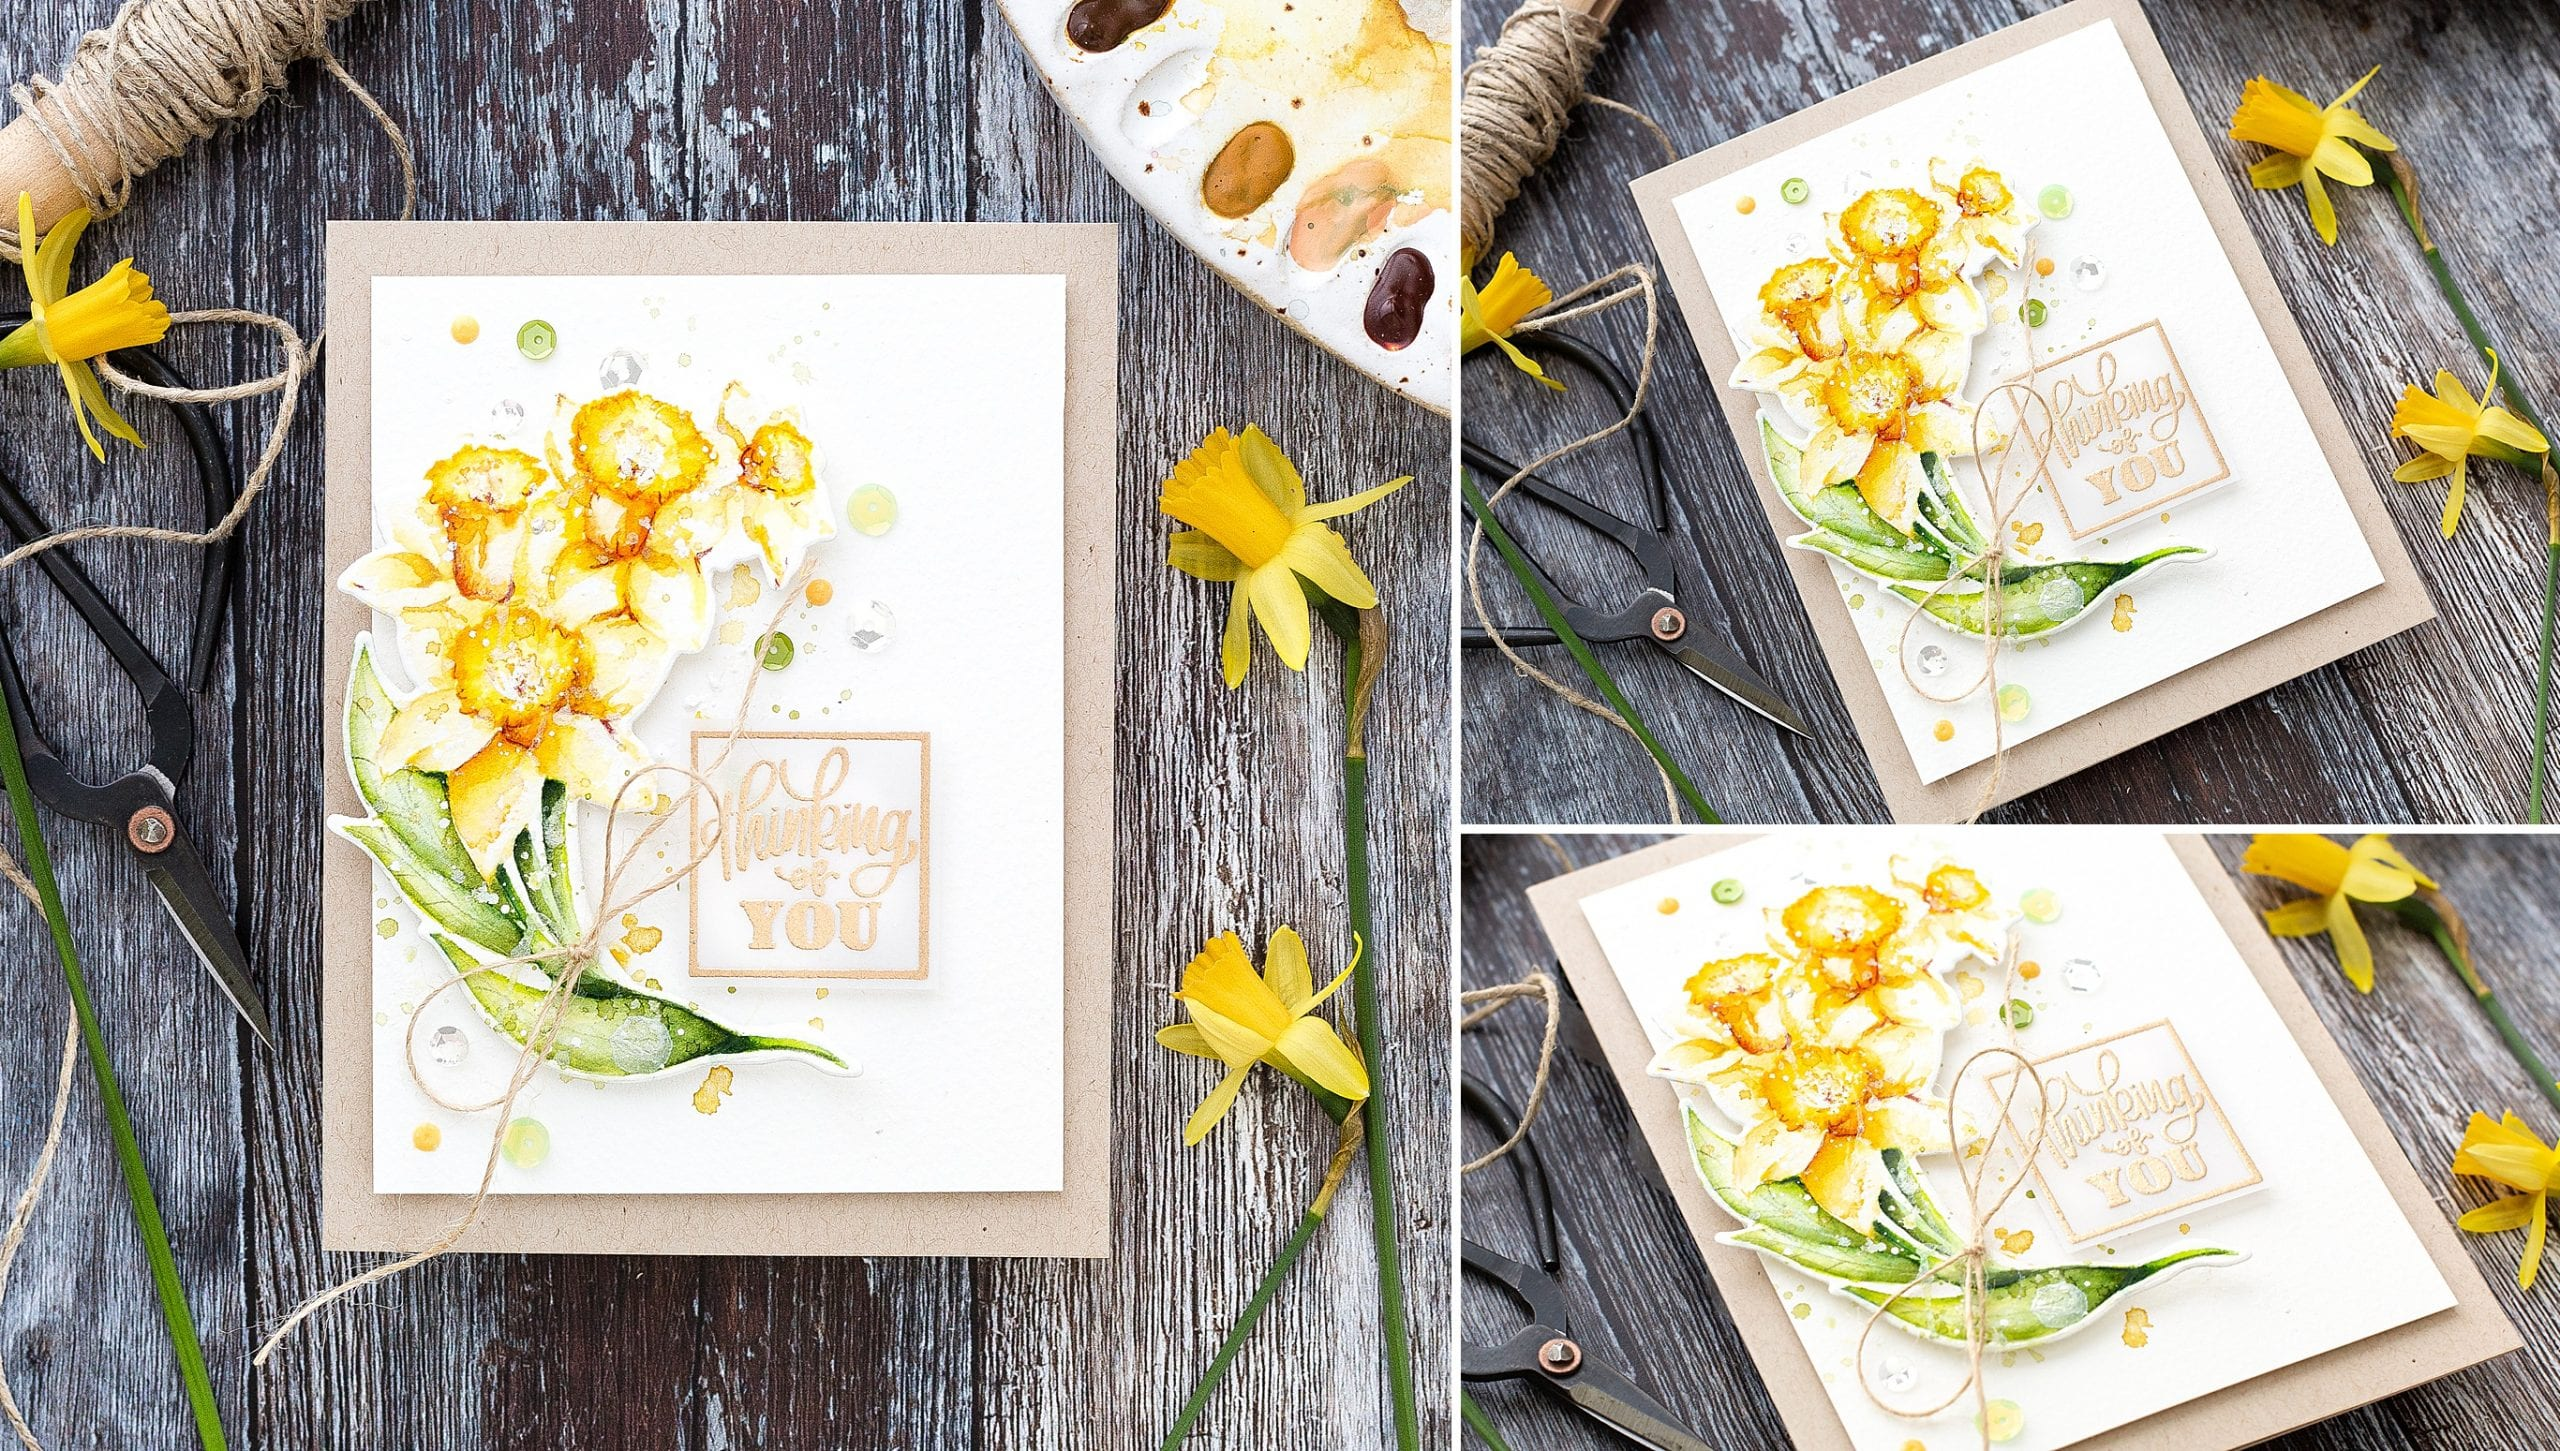 Watercoloured daffodils tutorial, handmade thinking of you card by Debby Hughes using supplies from Simon Says Stamp #watercolor #tutorial #homemade